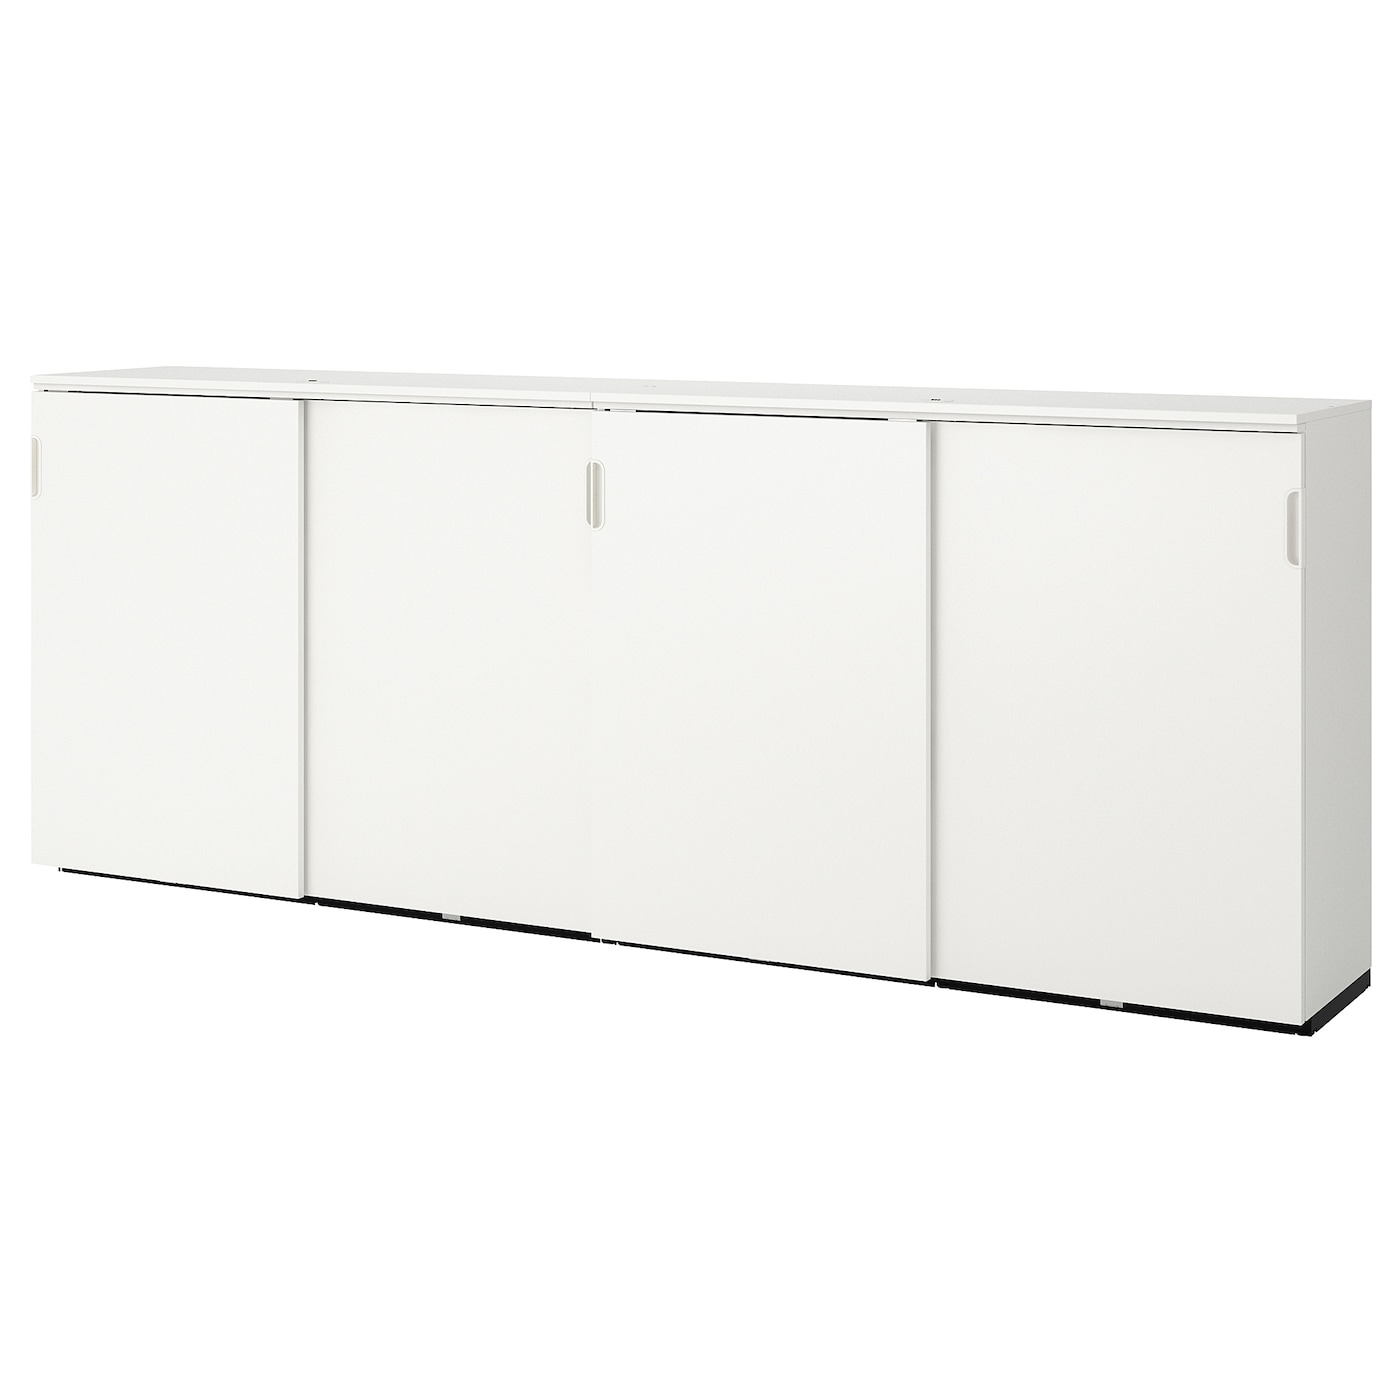 IKEA GALANT storage combination w sliding doors